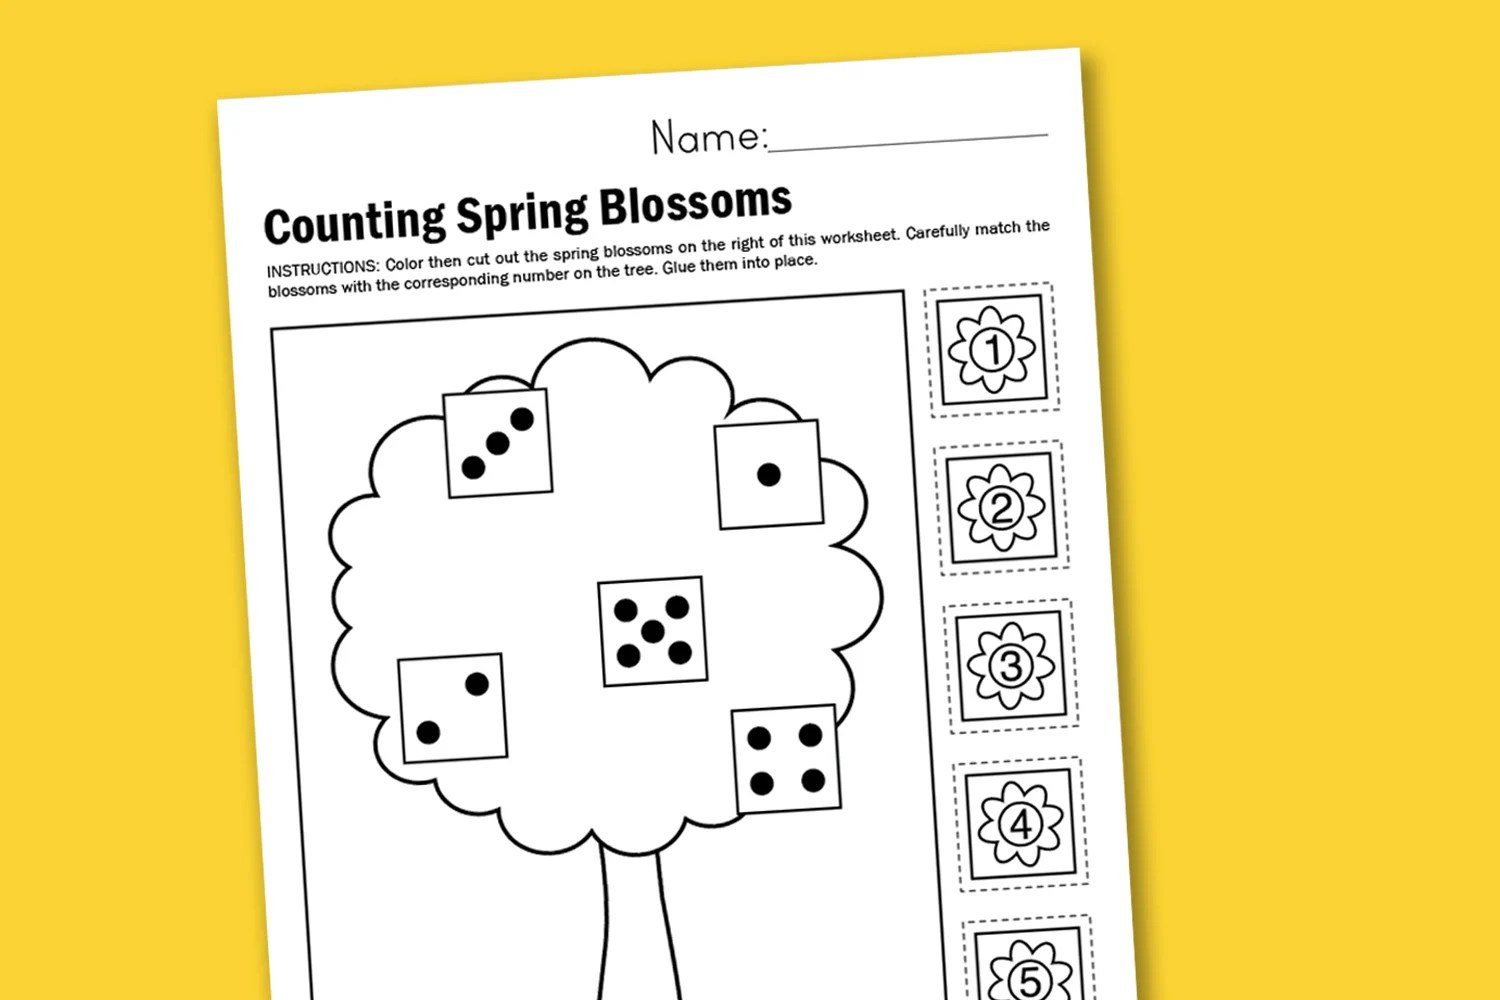 Worksheet Wednesday Counting Spring Blossoms